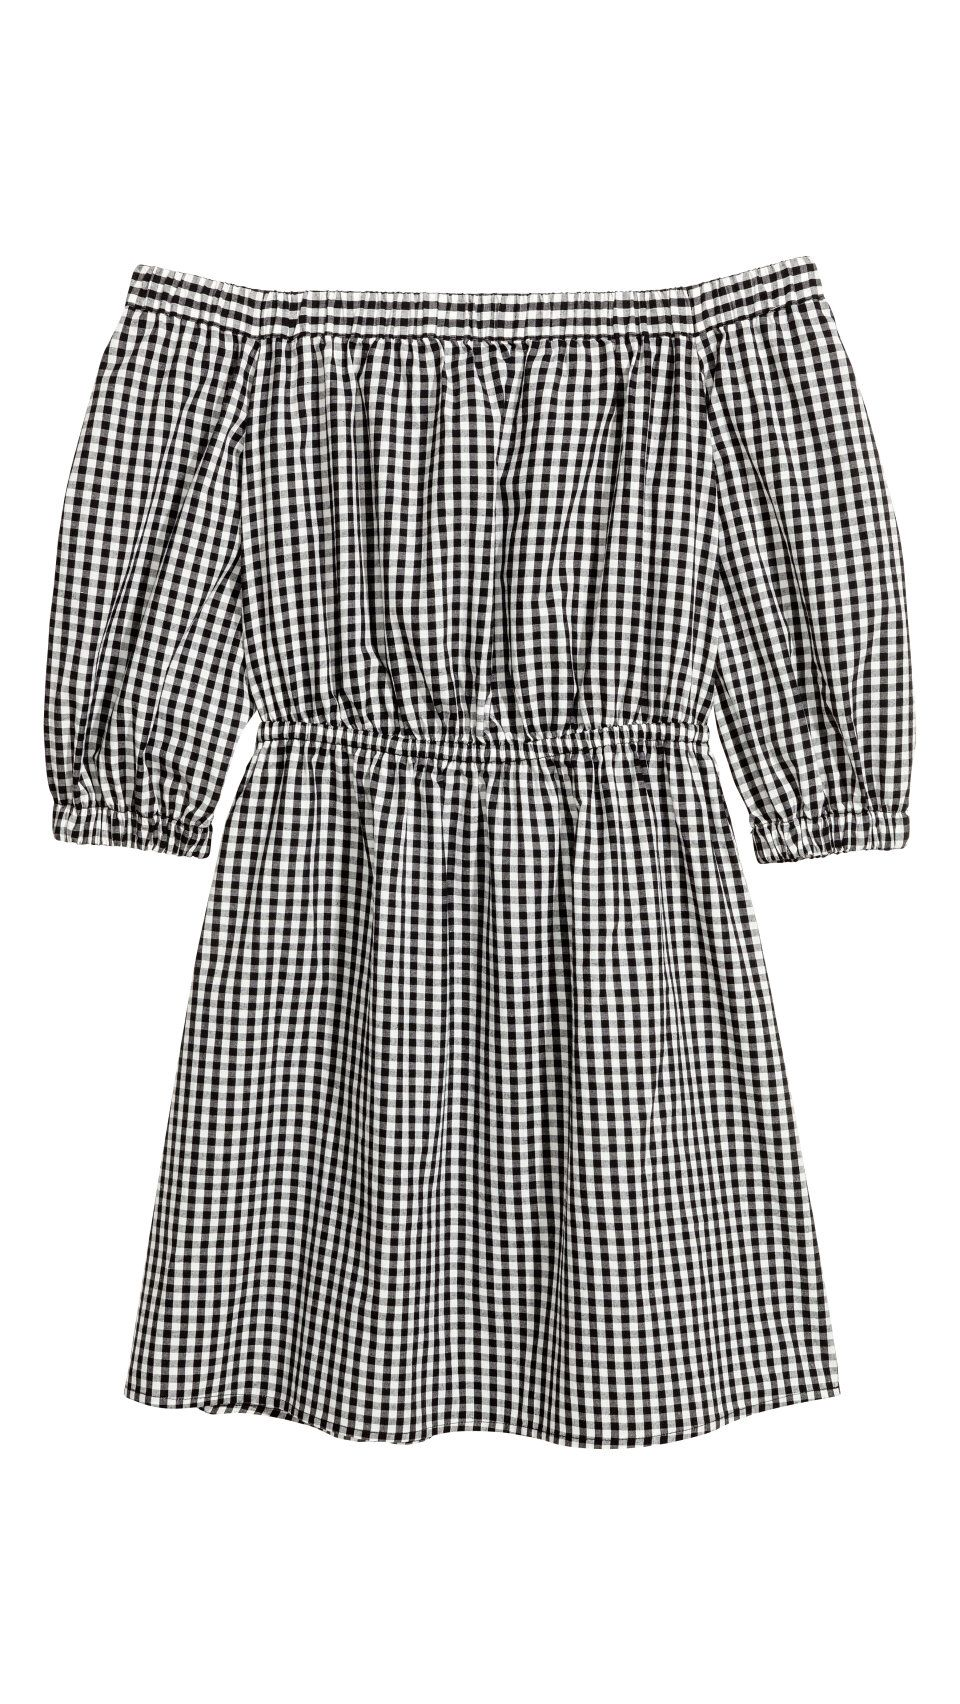 Gingham is still a favorite for fall fall transitional looks from